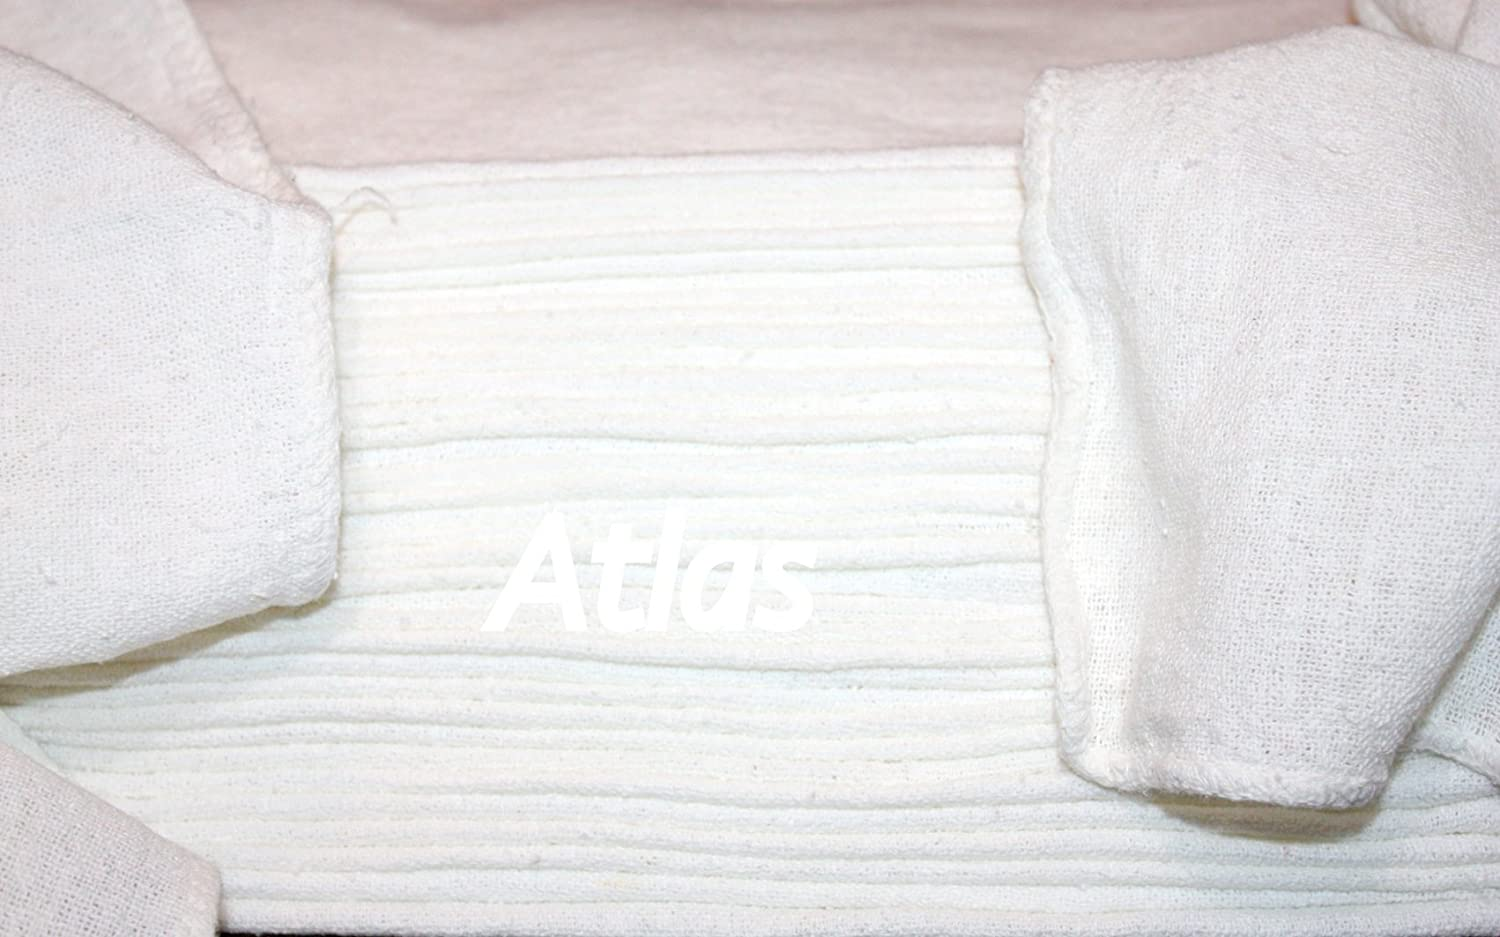 ATLAS 1000 Pcs White 100% Cotton Rags Shop Towel, Industrial Strength, New, for Wiping Machinery, Tools, Floors, Spills